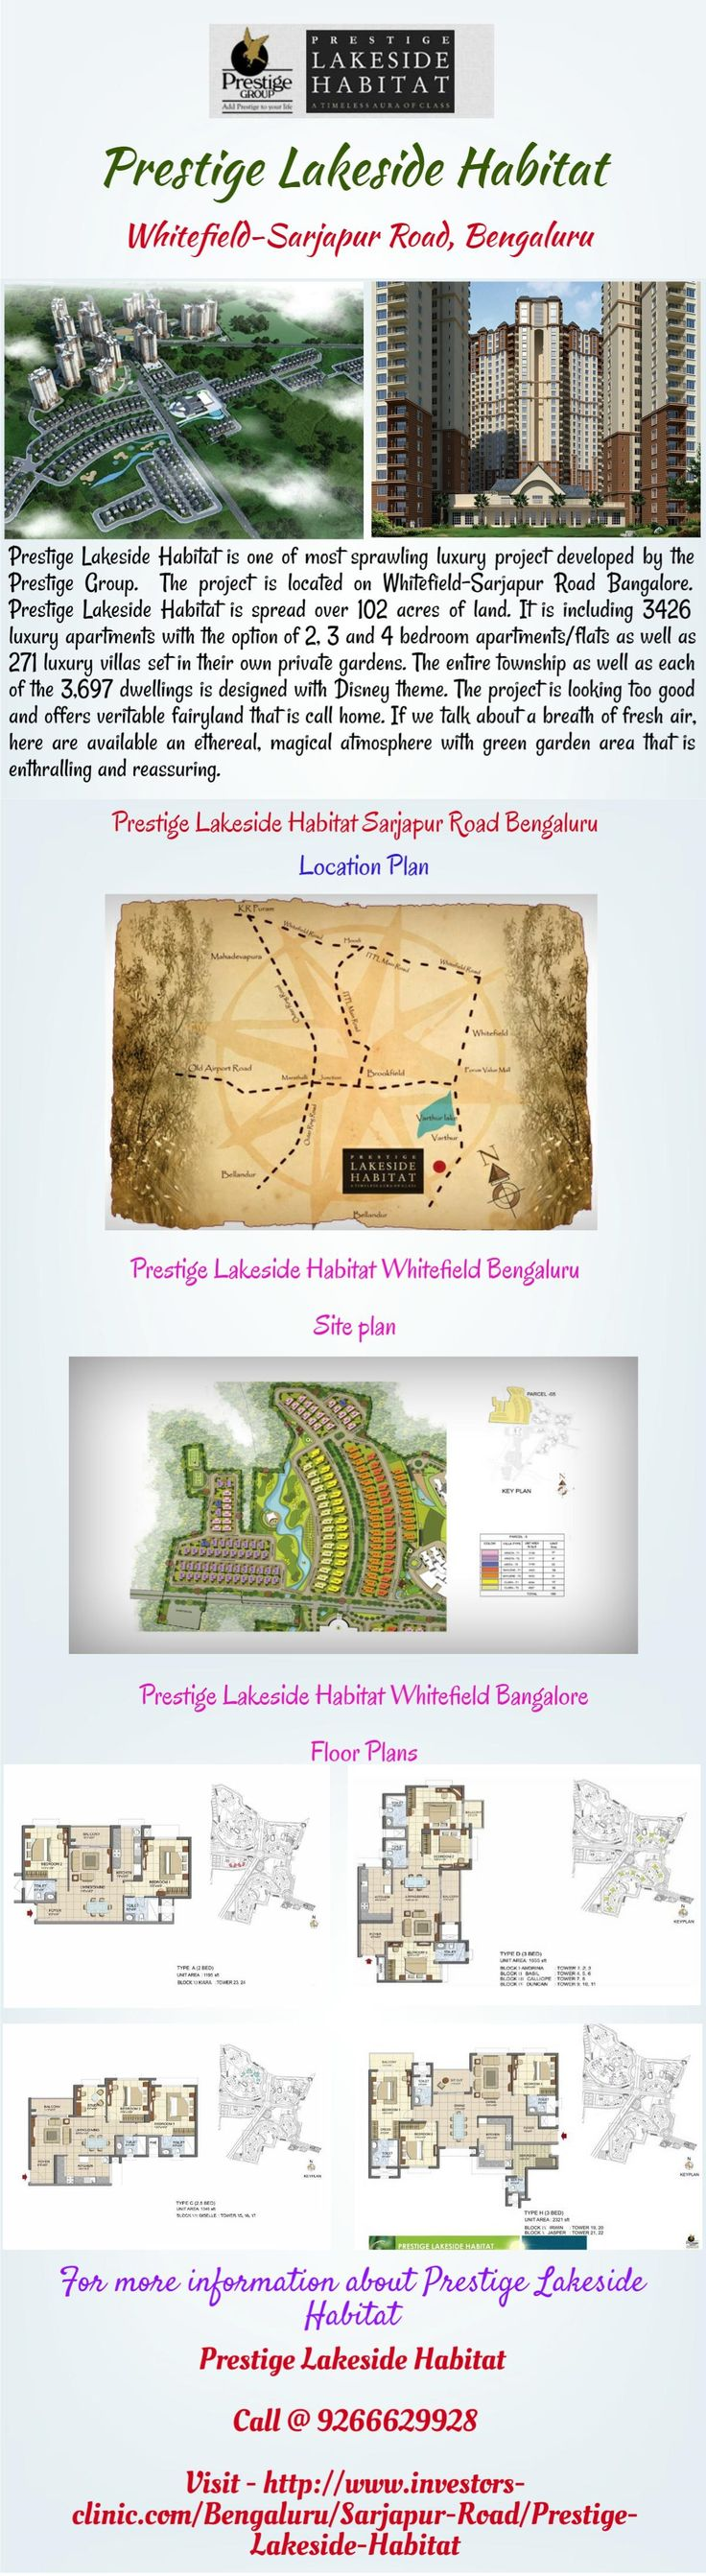 Prestige in east providence rhode island with reviews - Prestige Lakeside Habitat Is One Of Most Sprawling Luxury Project Developed By The Prestige Group